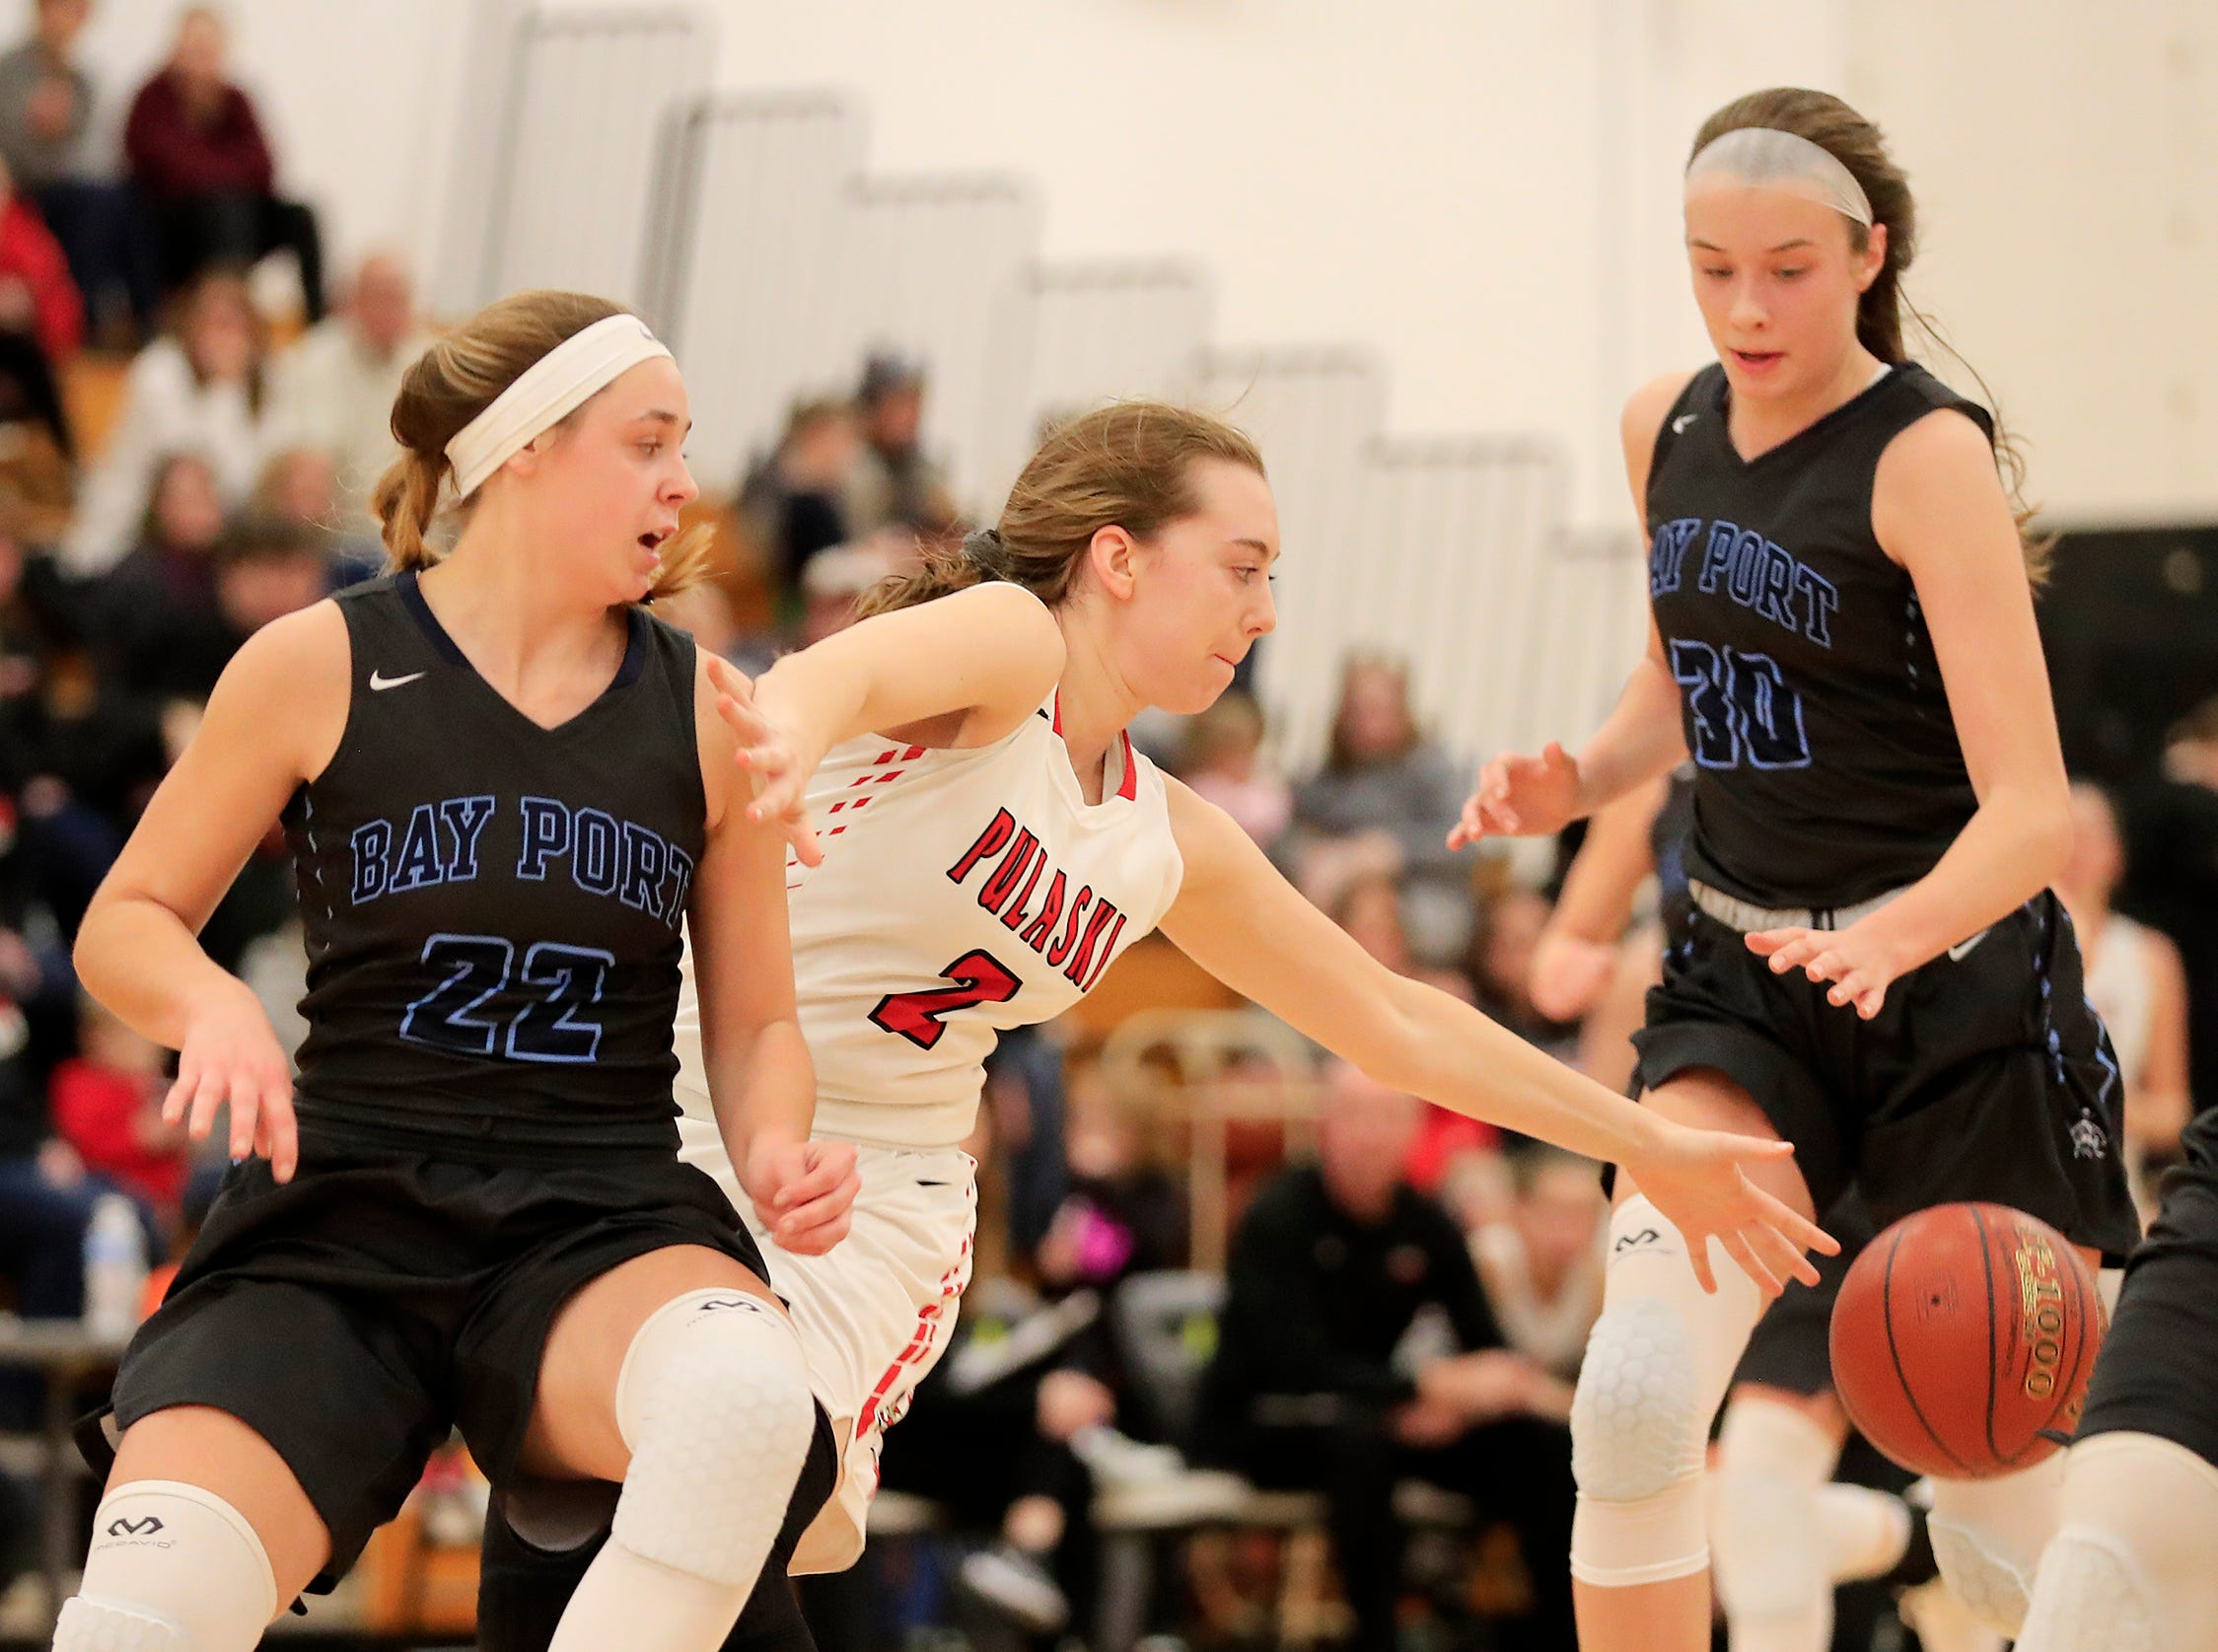 Pulaski's Isabel Majewski (2) loses control of the ball against Bay Port's McKenzie Johnson (22) in a girls basketball game at Pulaski high school on Friday, January 4, 2019 in Pulaski, Wis.